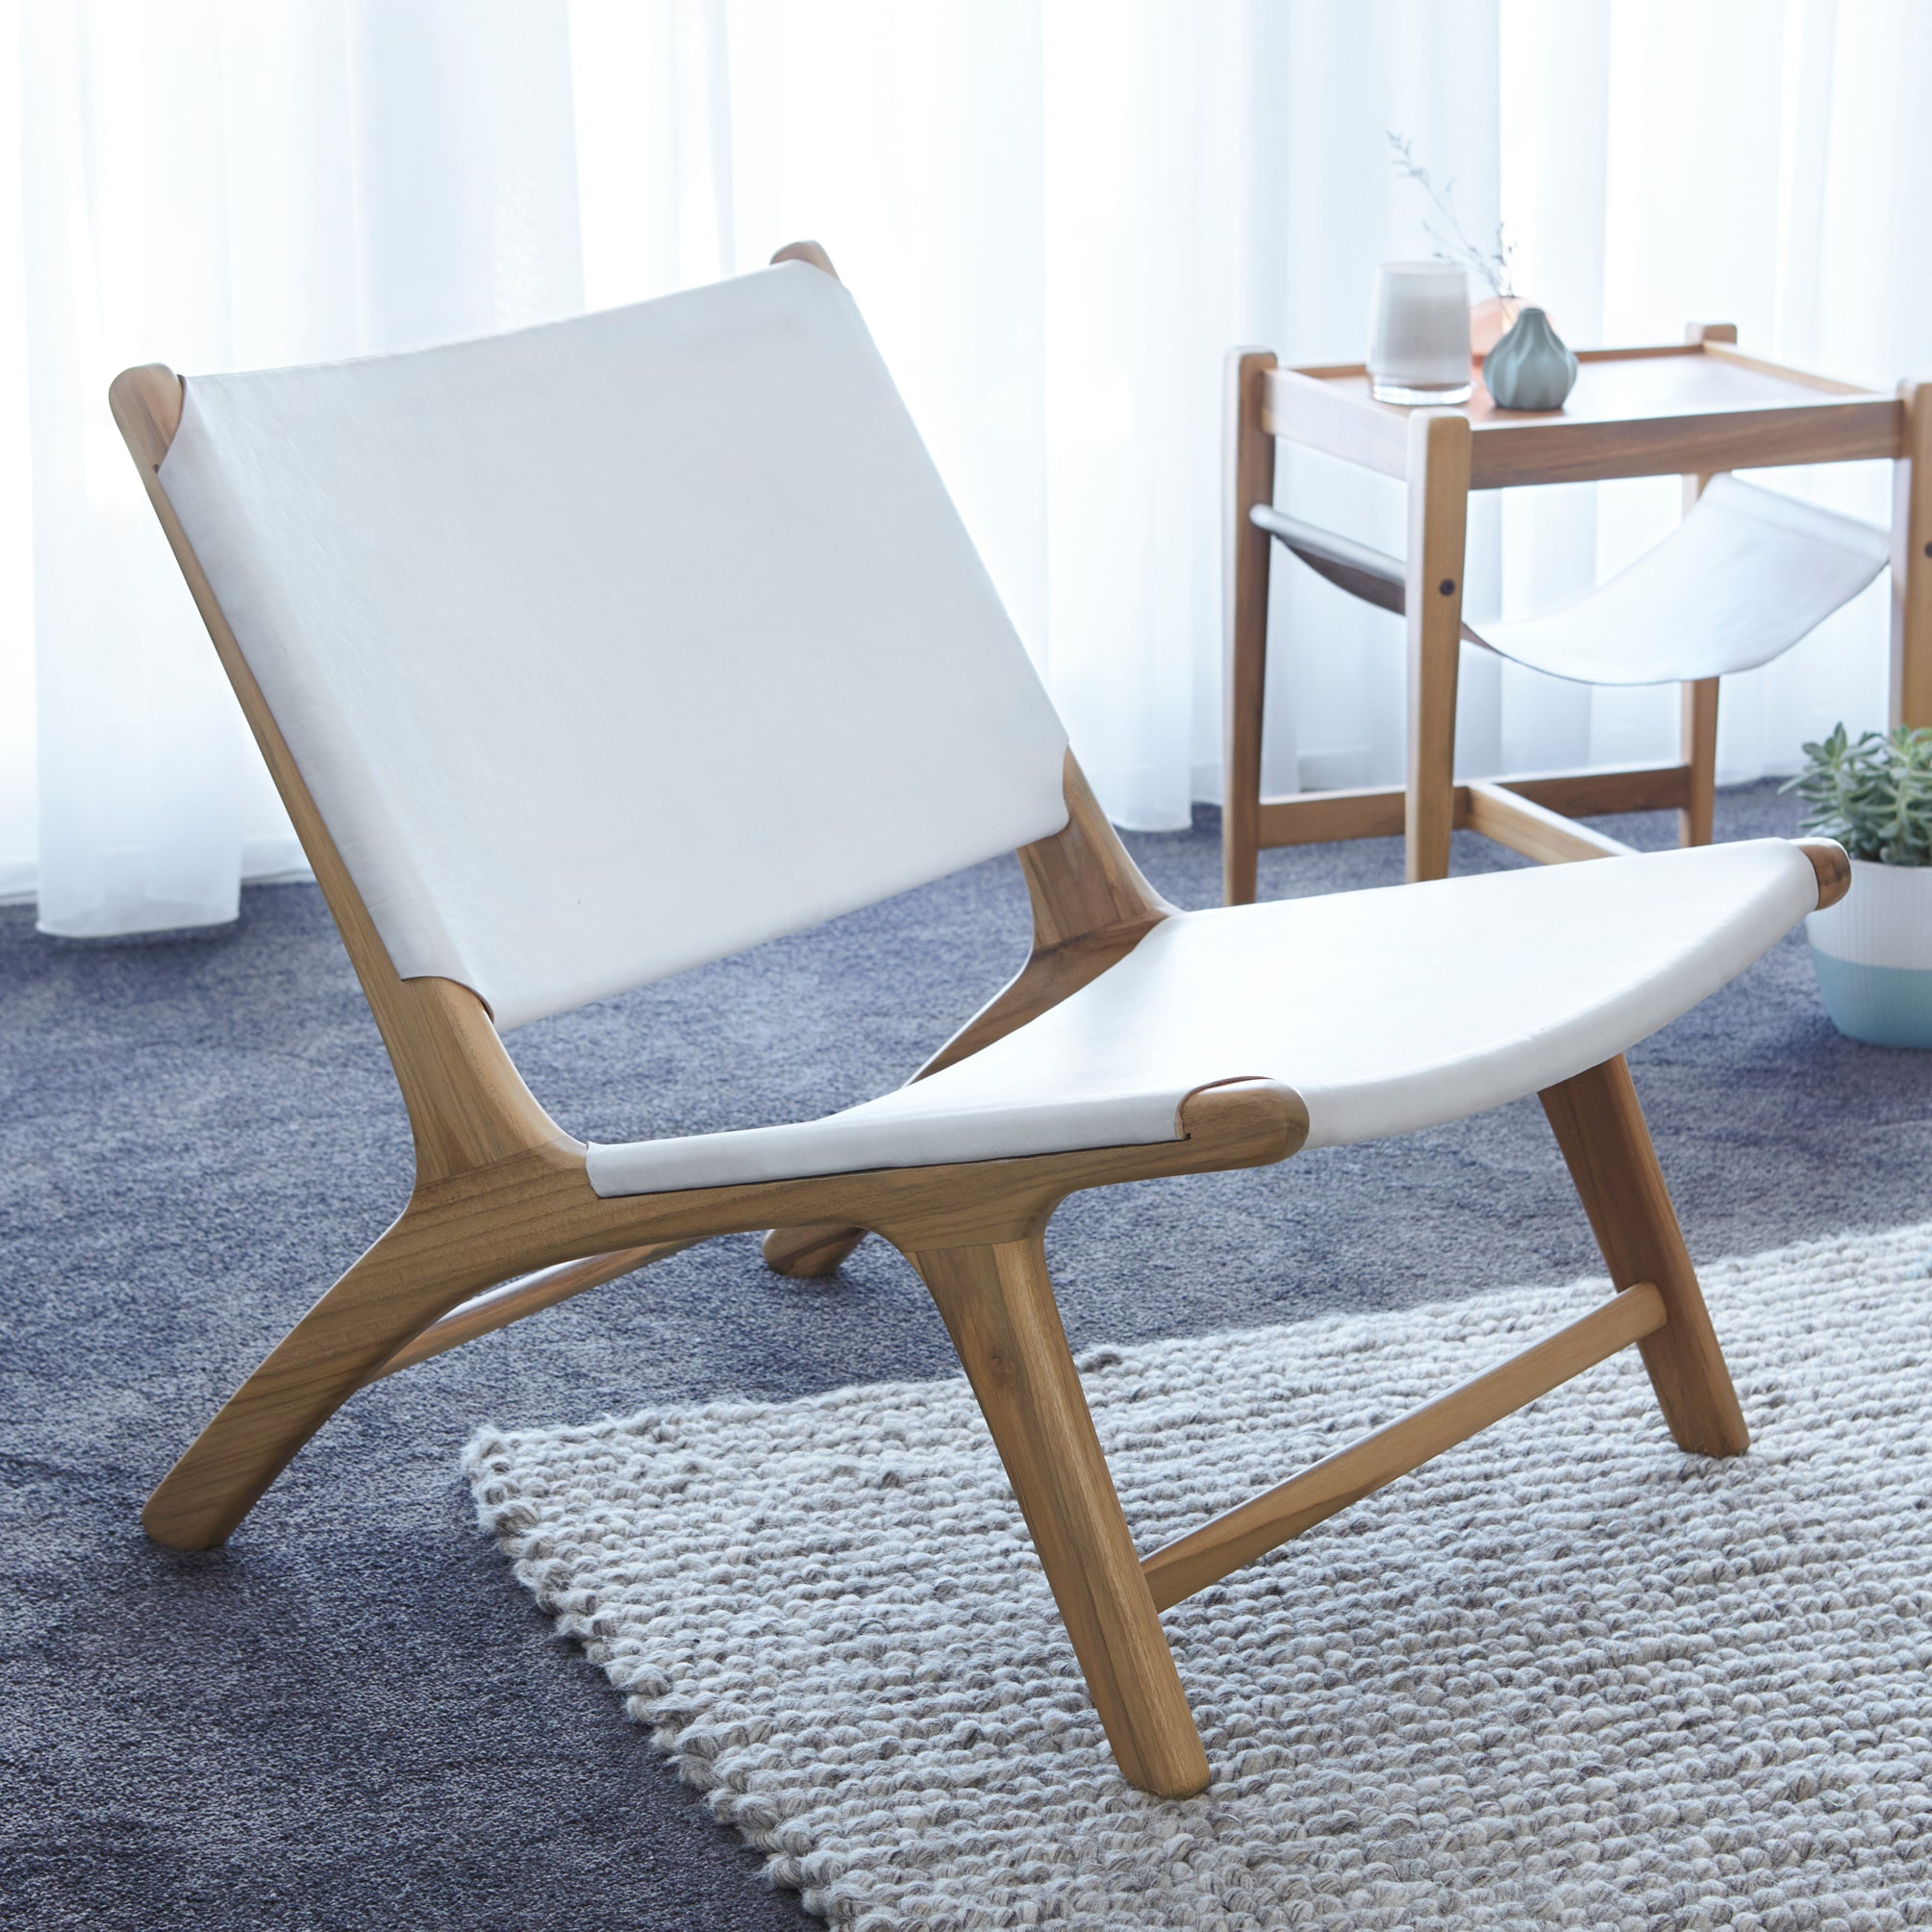 Sienna Low Chair - WHITE